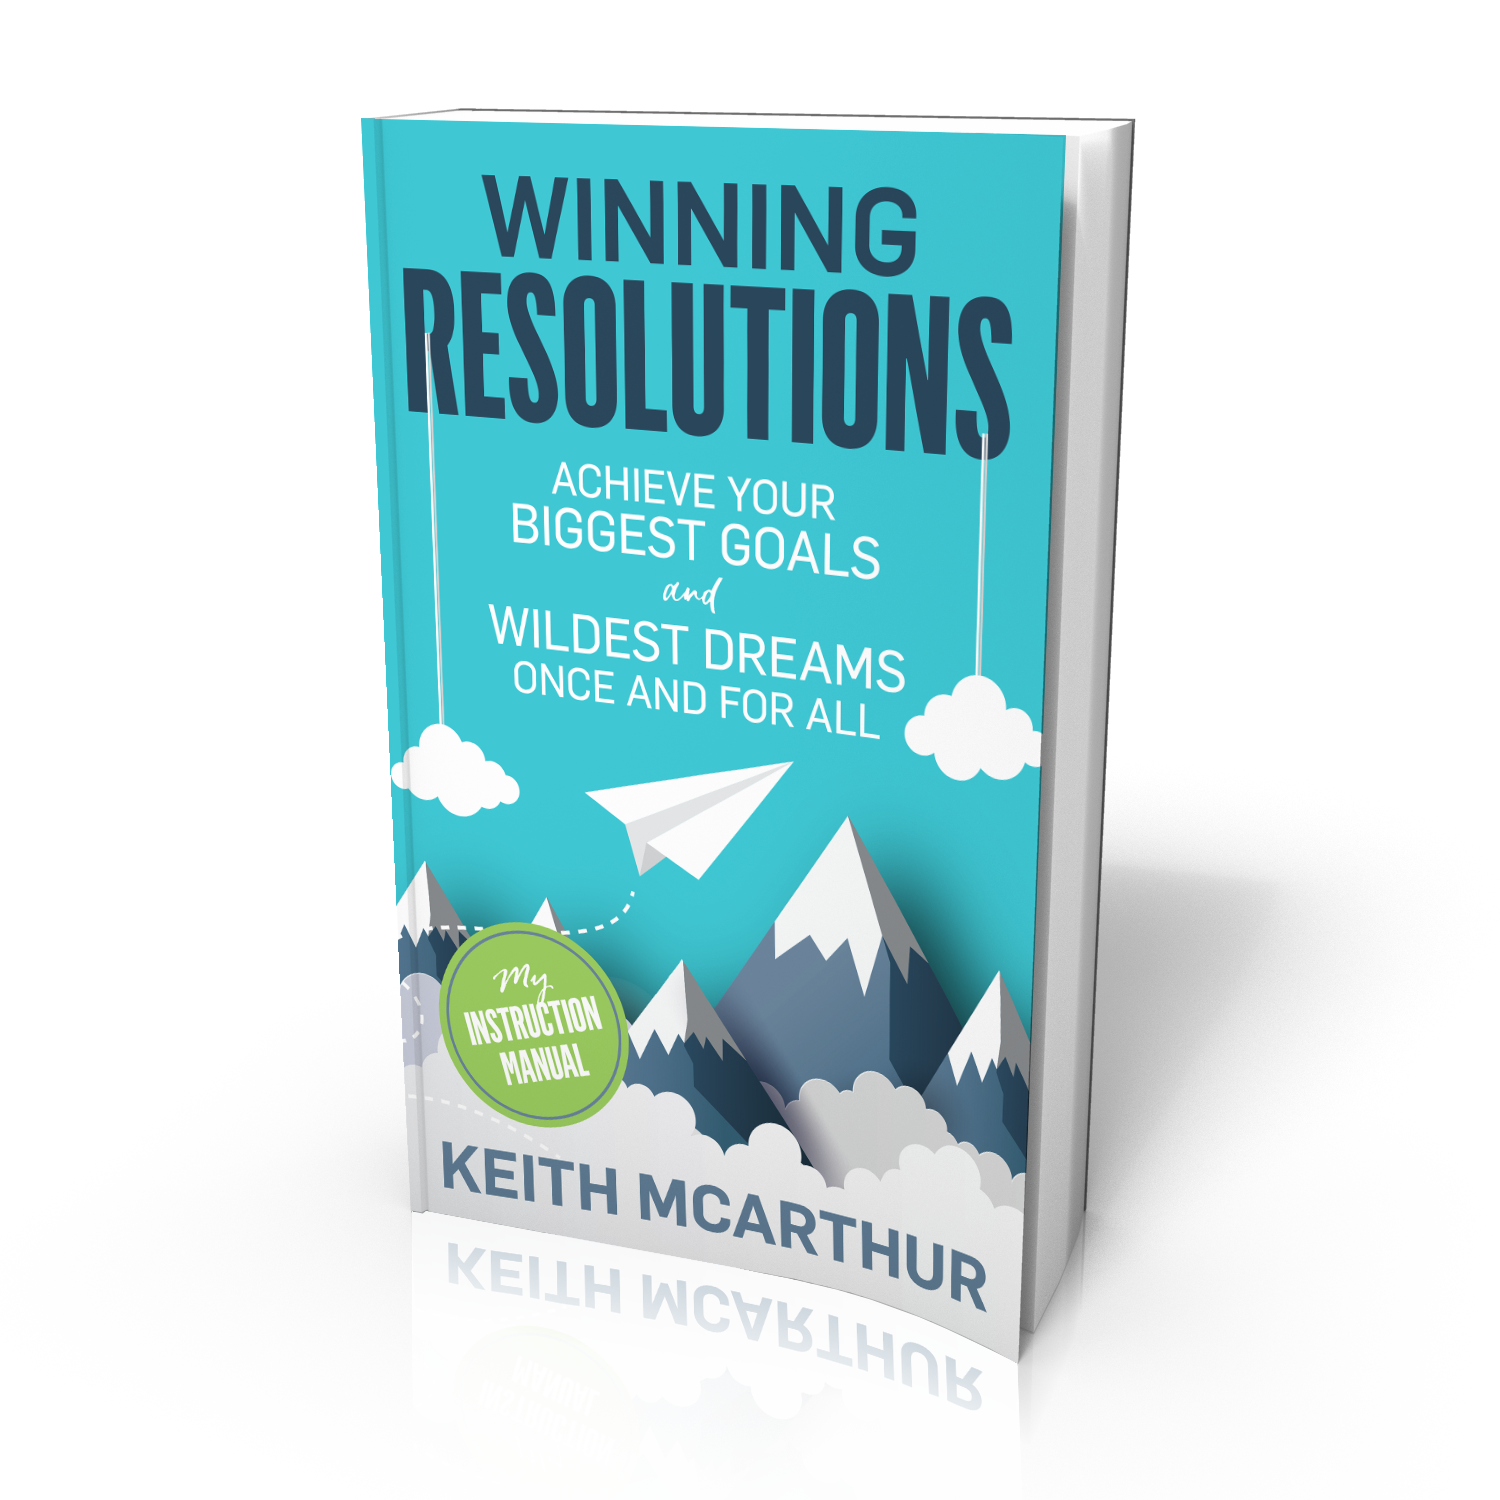 Winning Resolutions 3D Book Cover | My Instruction Manual